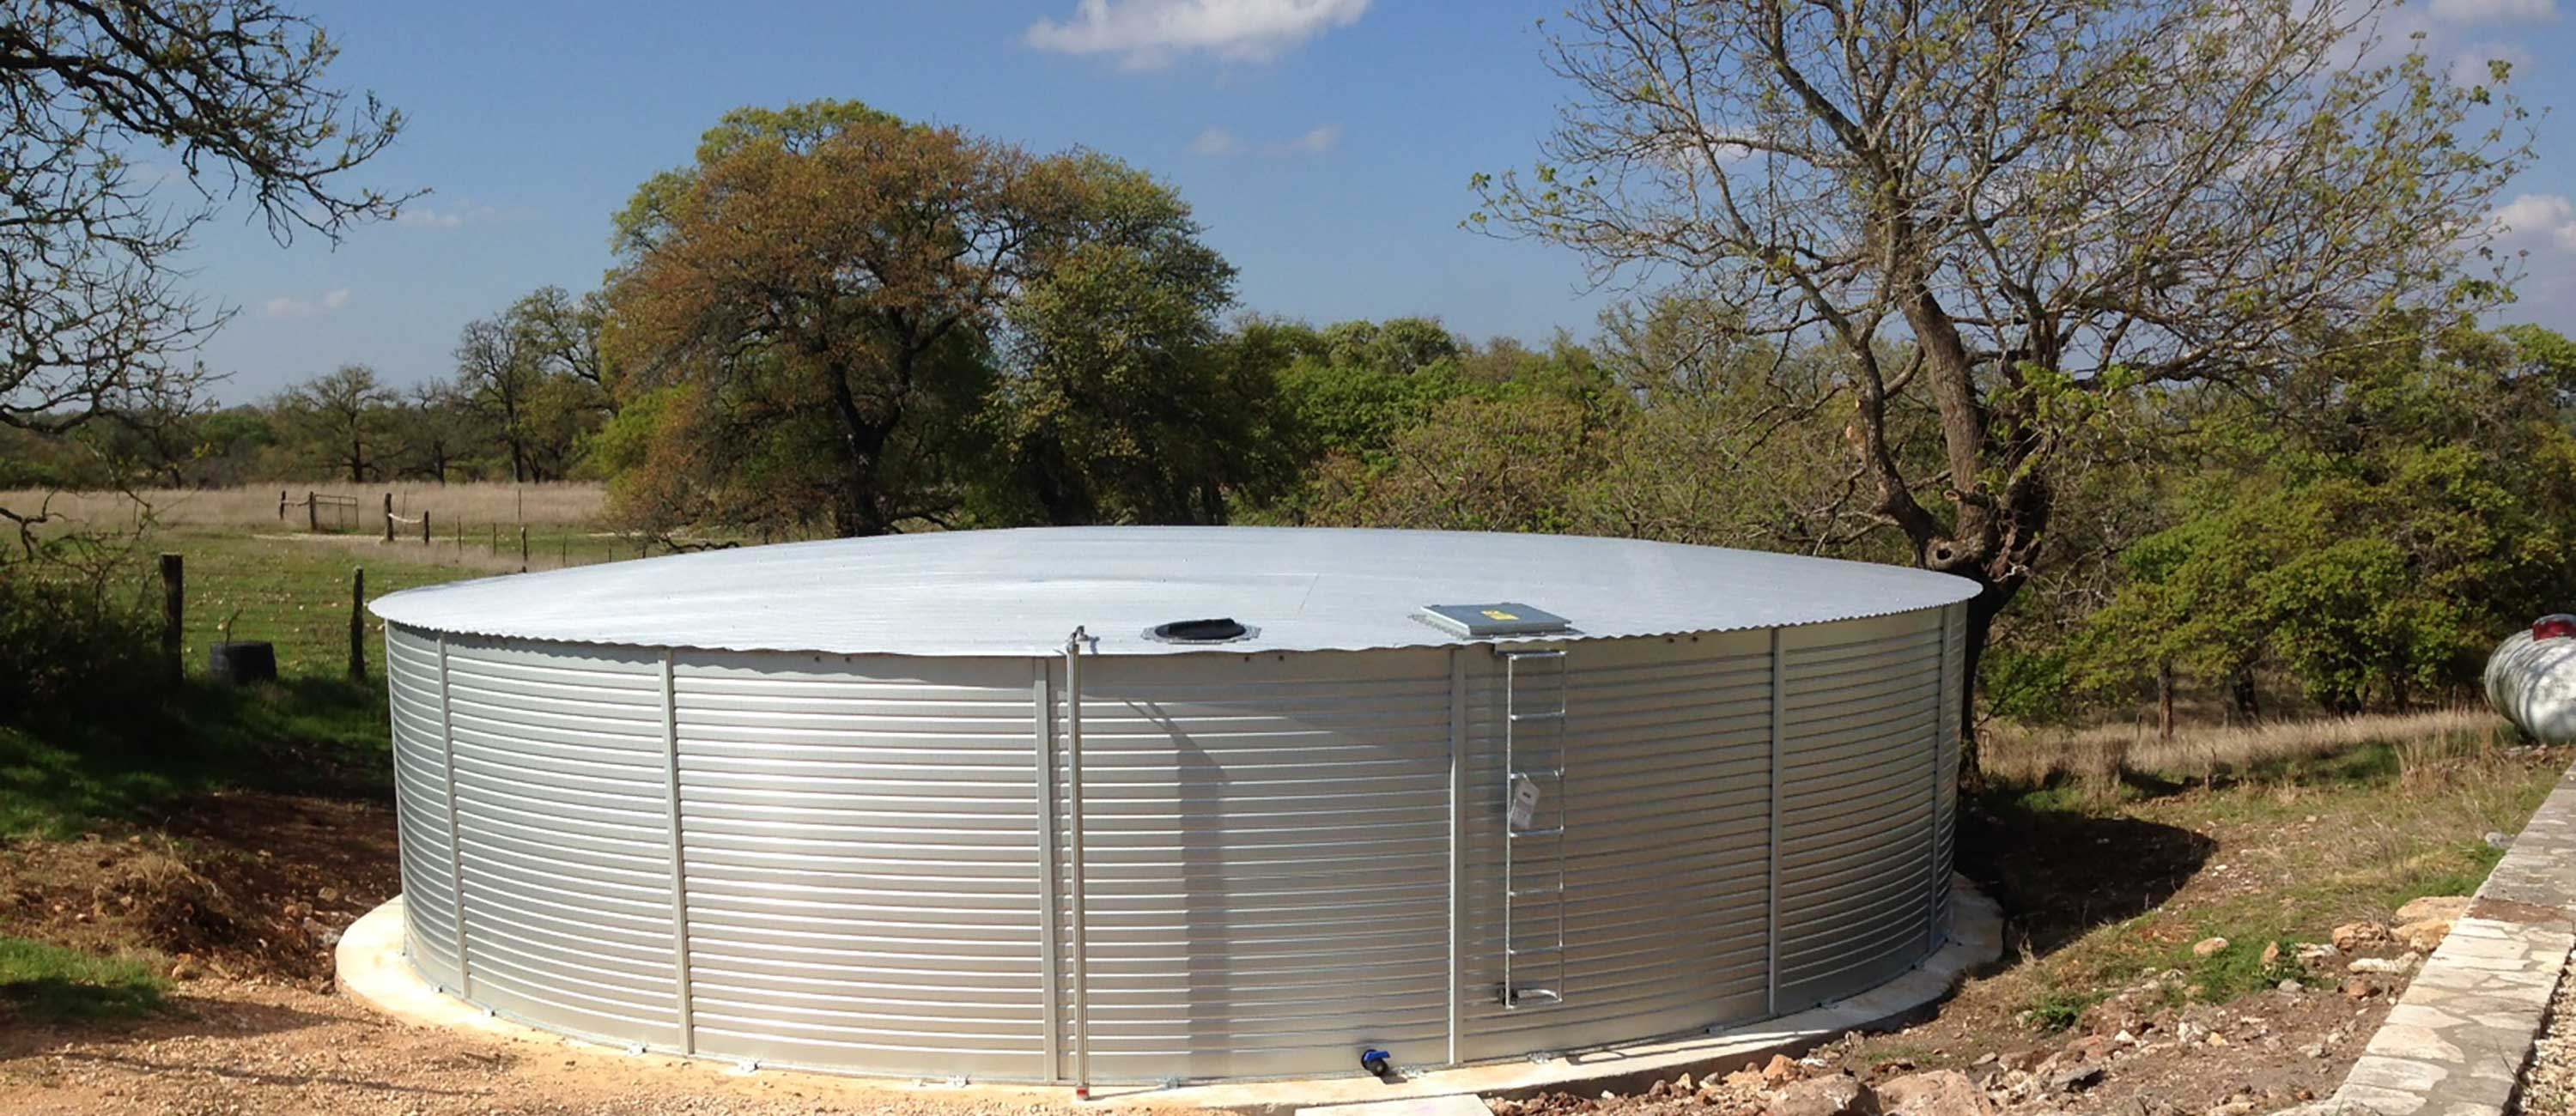 Contact us Acer Water Tanks Pioneer Water Tanks